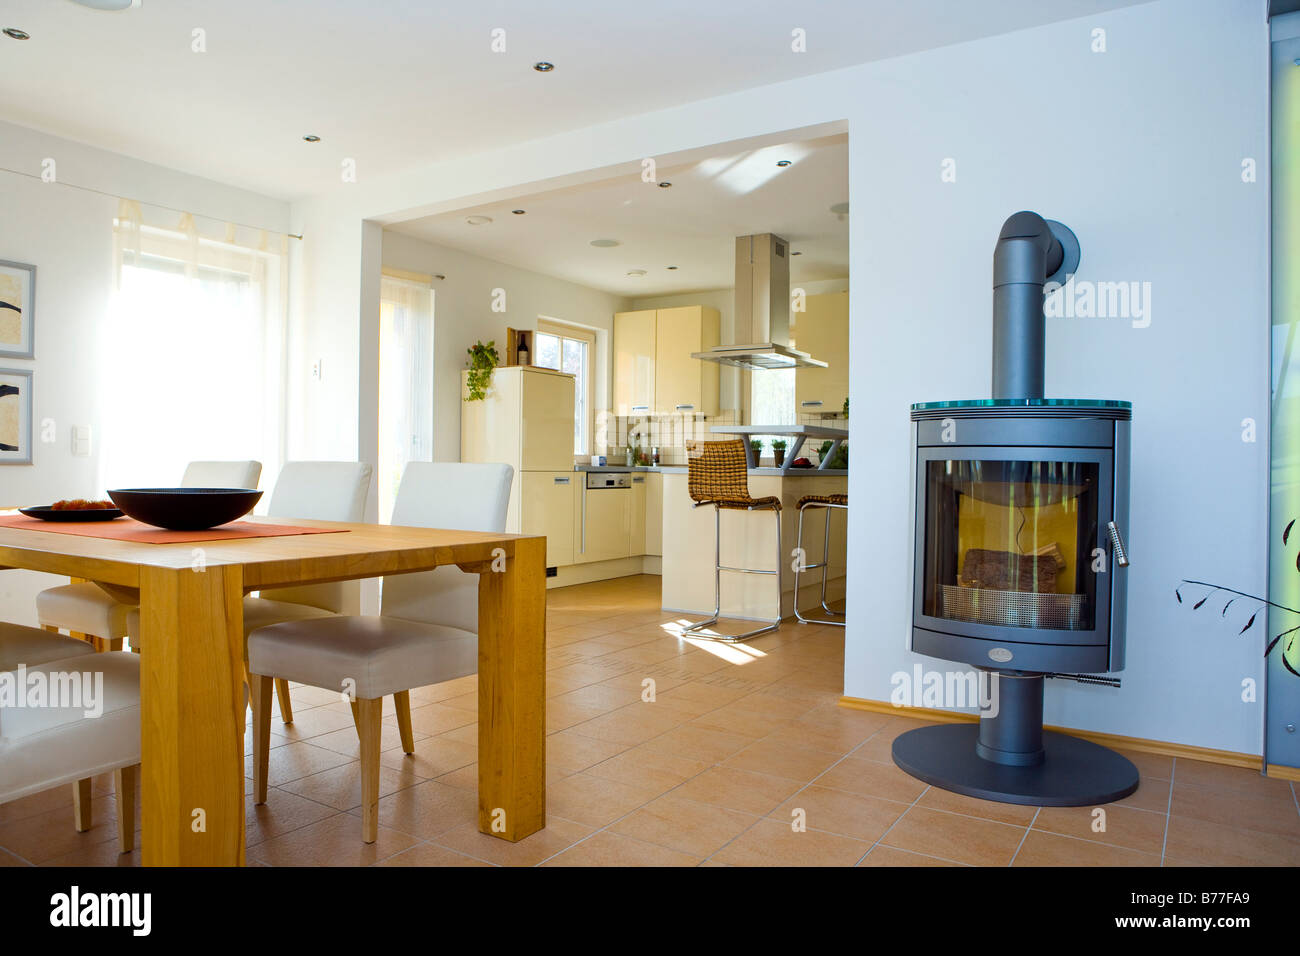 modernes esszimmer, modern dining room stock photo, royalty free